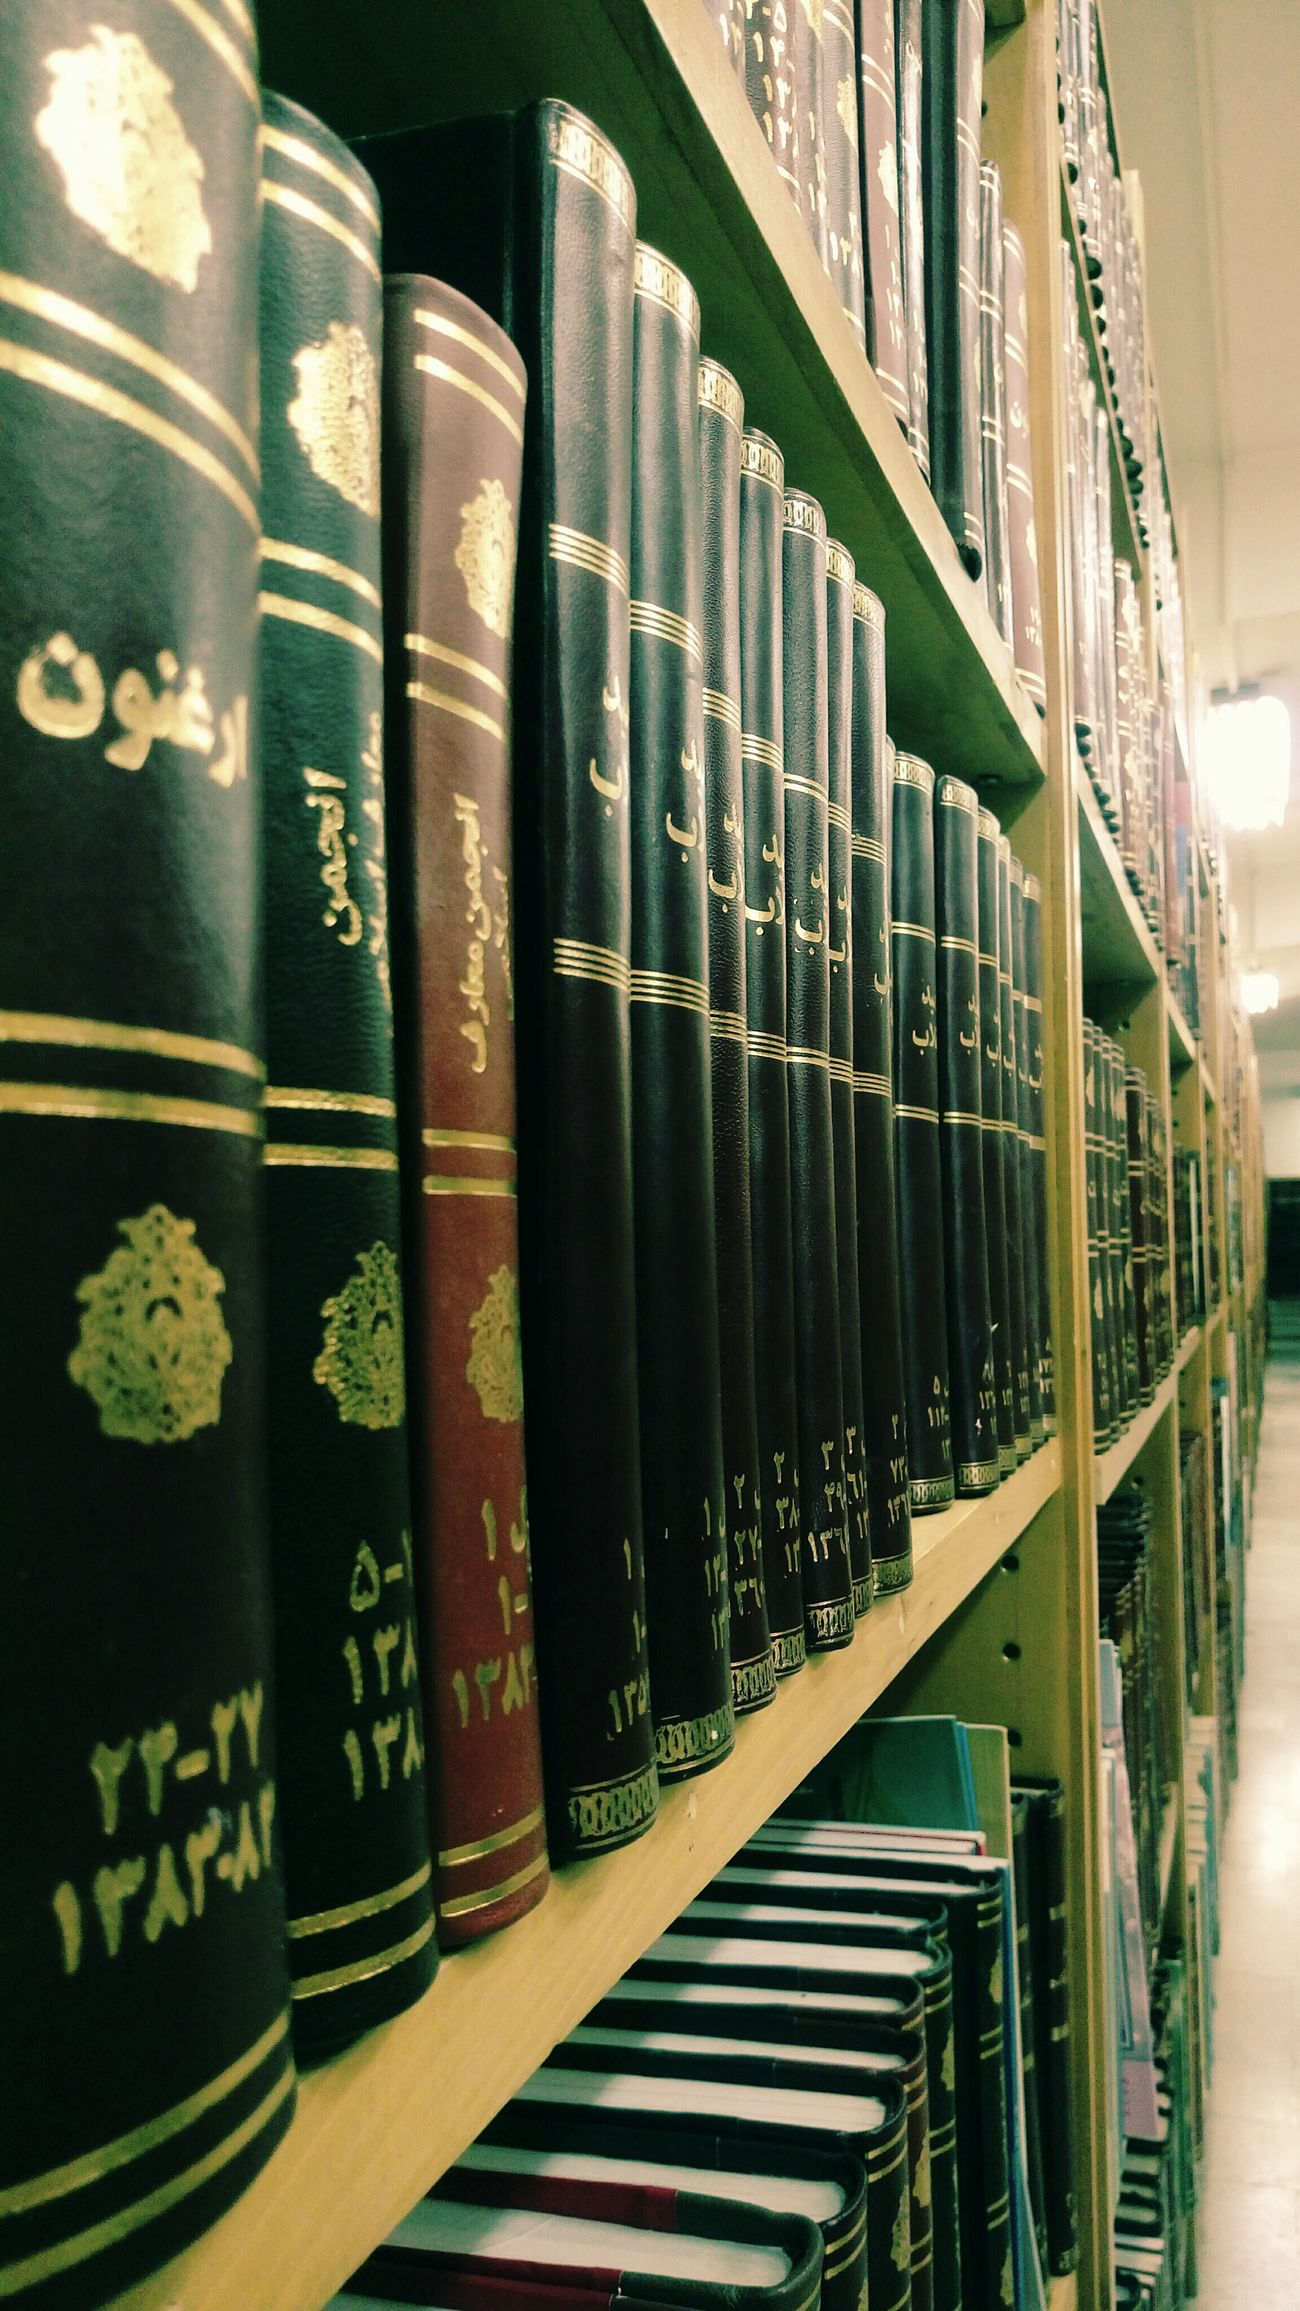 Books, Books & more Books... In A Row Shelf Bookshelf History Old-fashioned Library No People Indoors  Science Day Library Books Library View Library Library Building Unversitytime Cultures Mobilephotography Bookshelf Book Books ♥ Close-up Indoors  Large Group Of Objects Mobile Photography